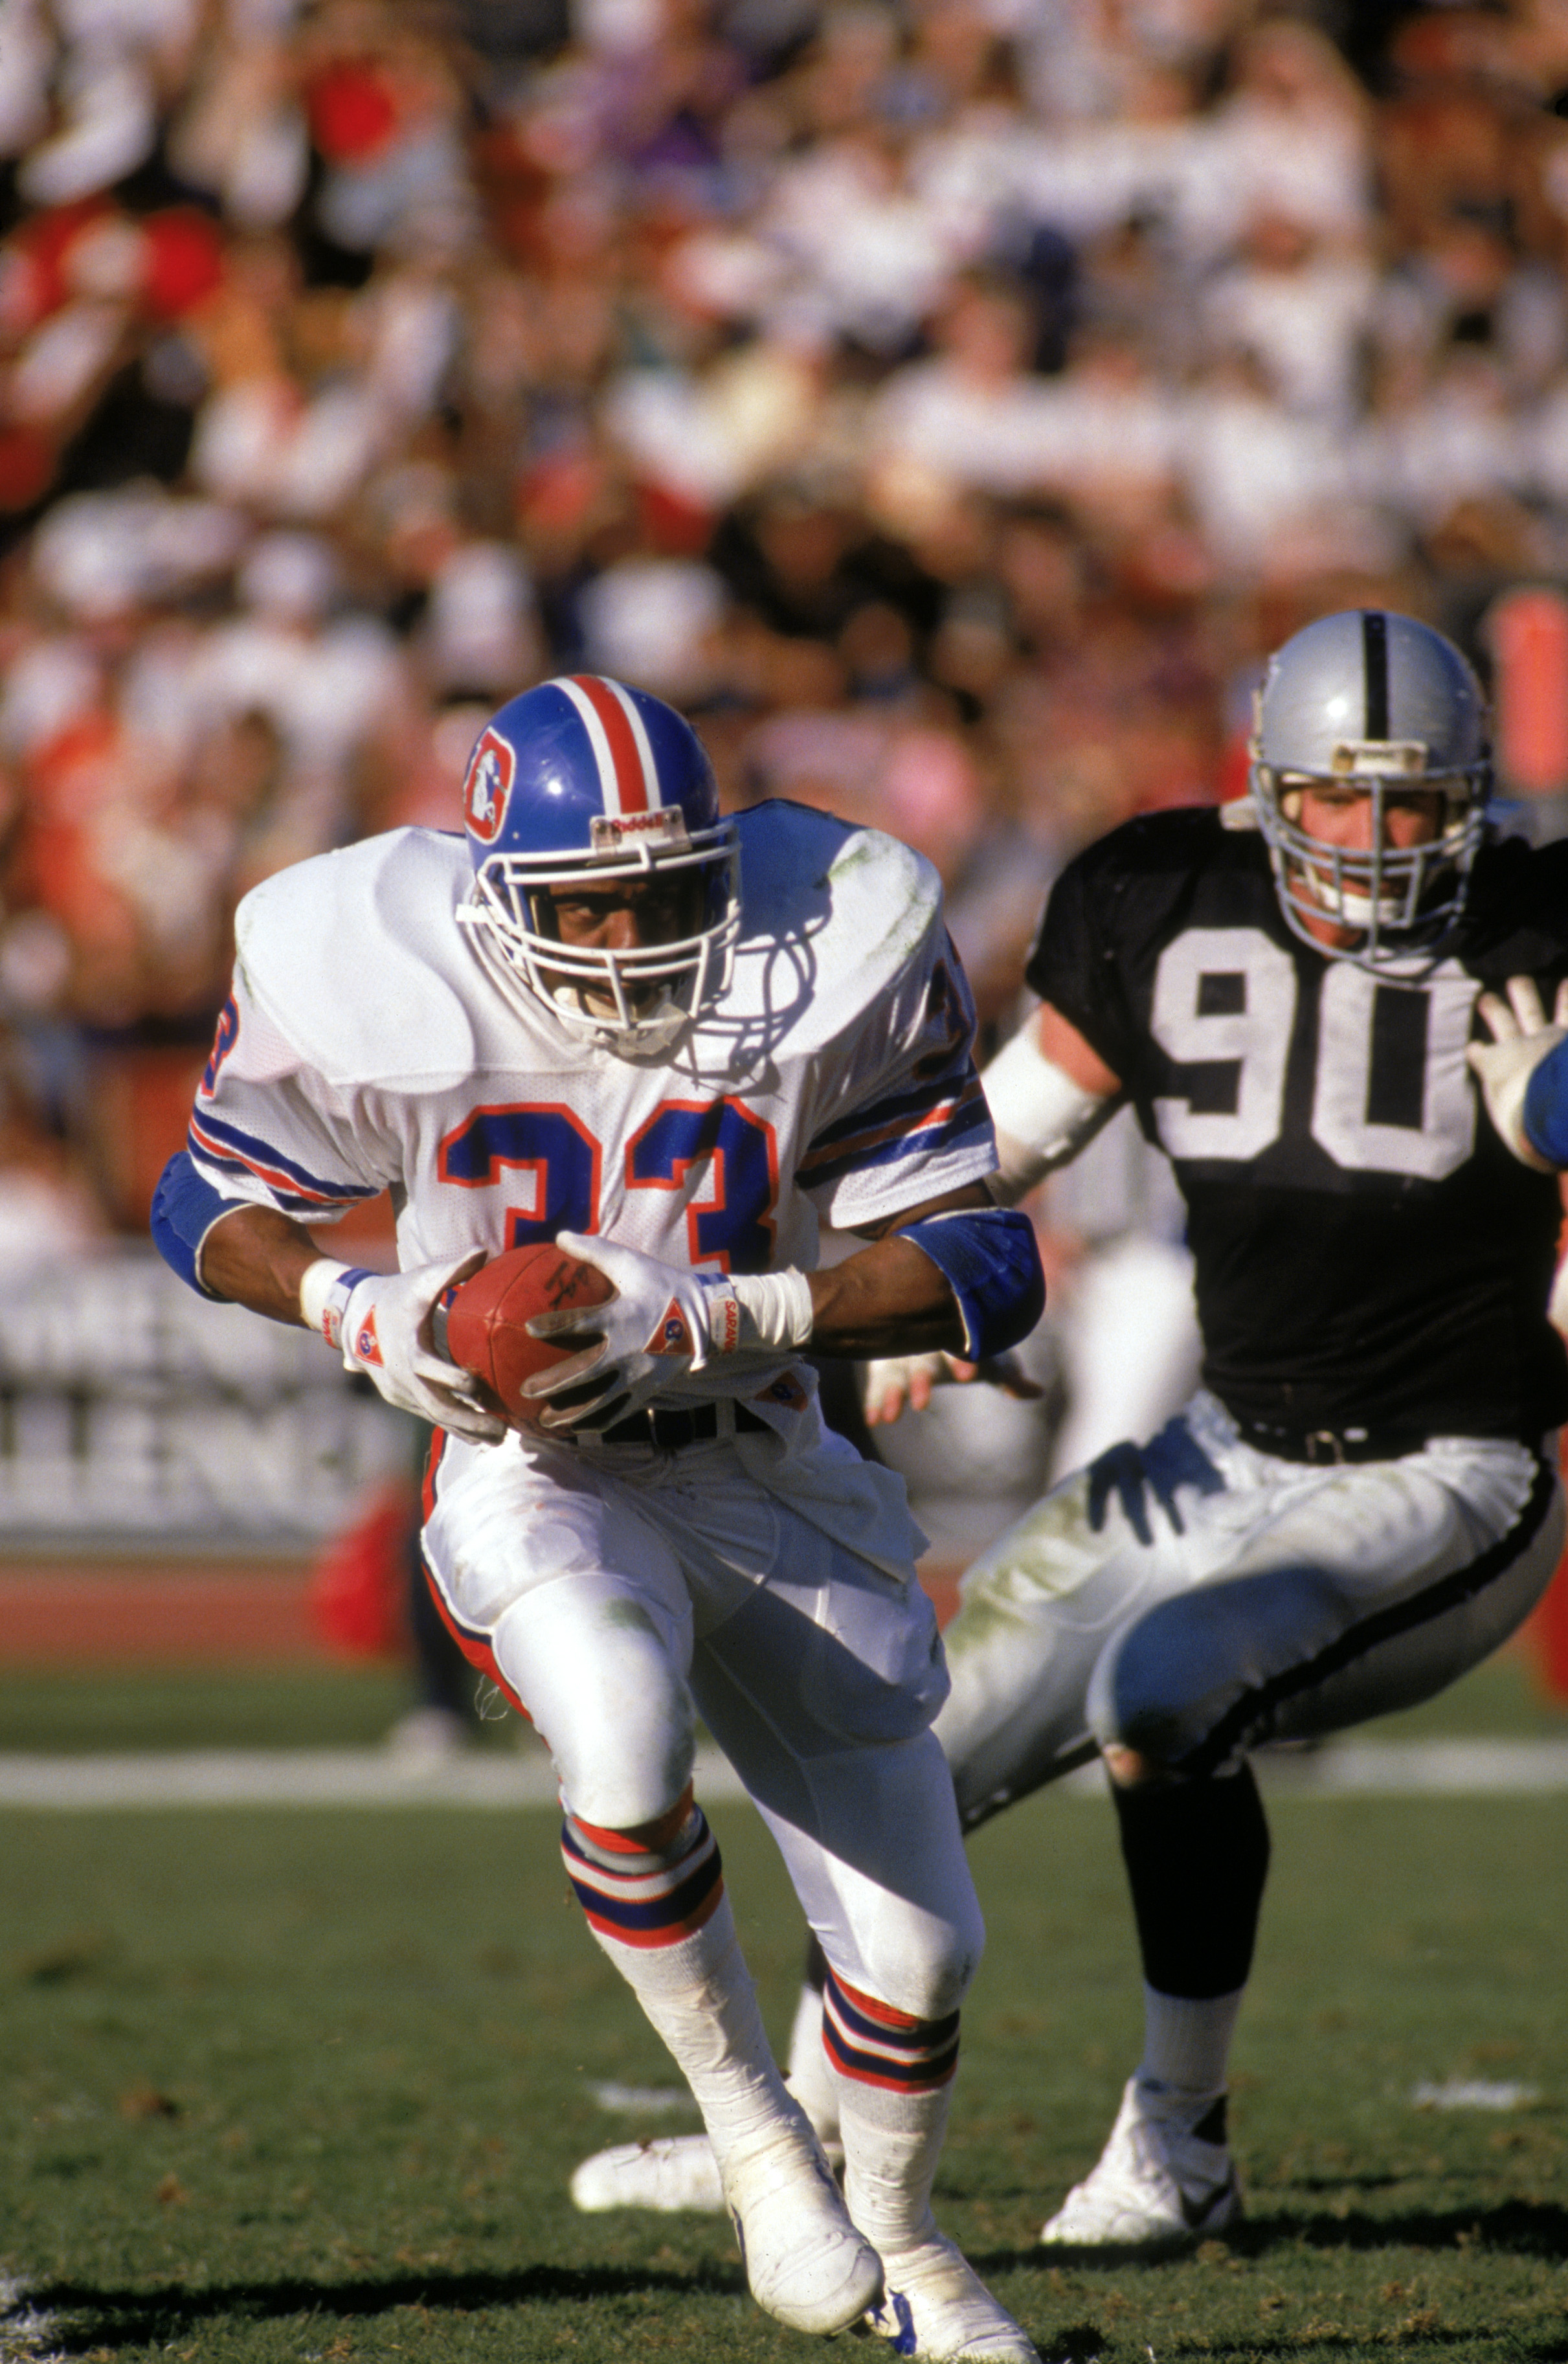 NFL s Greatest Running Backs  Ranking Today s 10 Best vs. 10 All-Time Studs 522f695b9